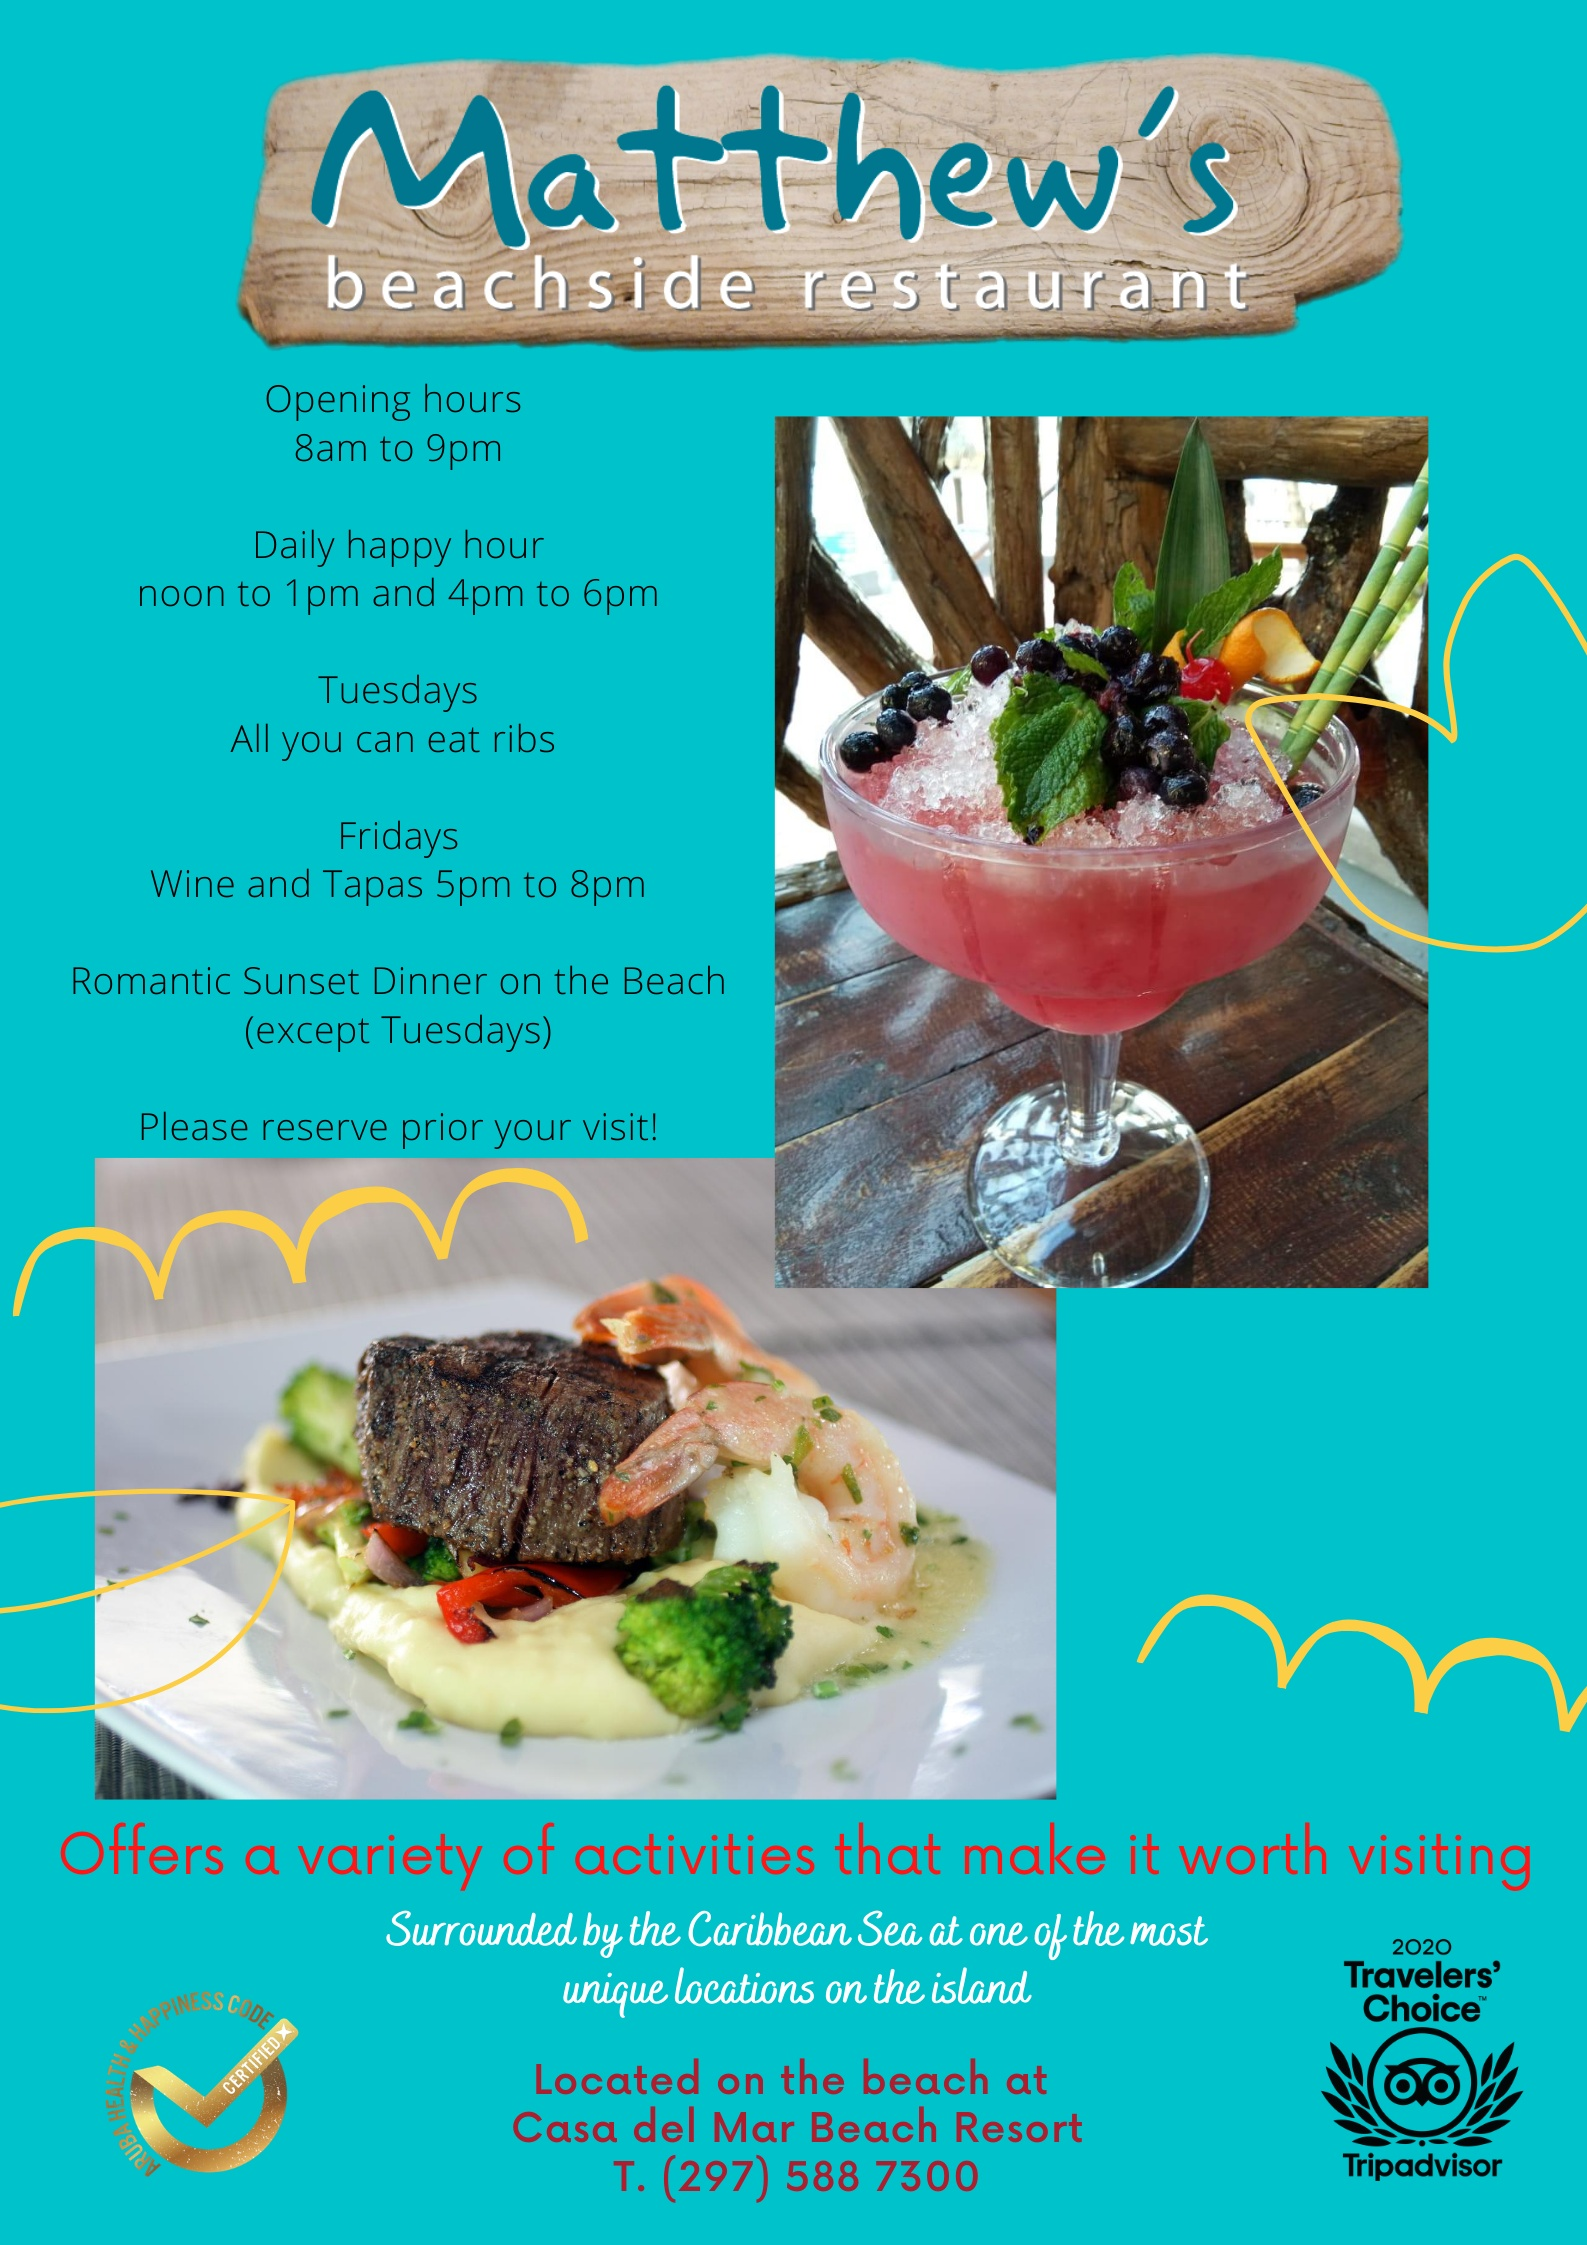 Activities flyer with Daily Happy Hours (noon-1pm & 4pm-6pm), Tuesday All You Can Eat Ribs and Friday Wine & Tapas (5pm-8pm)